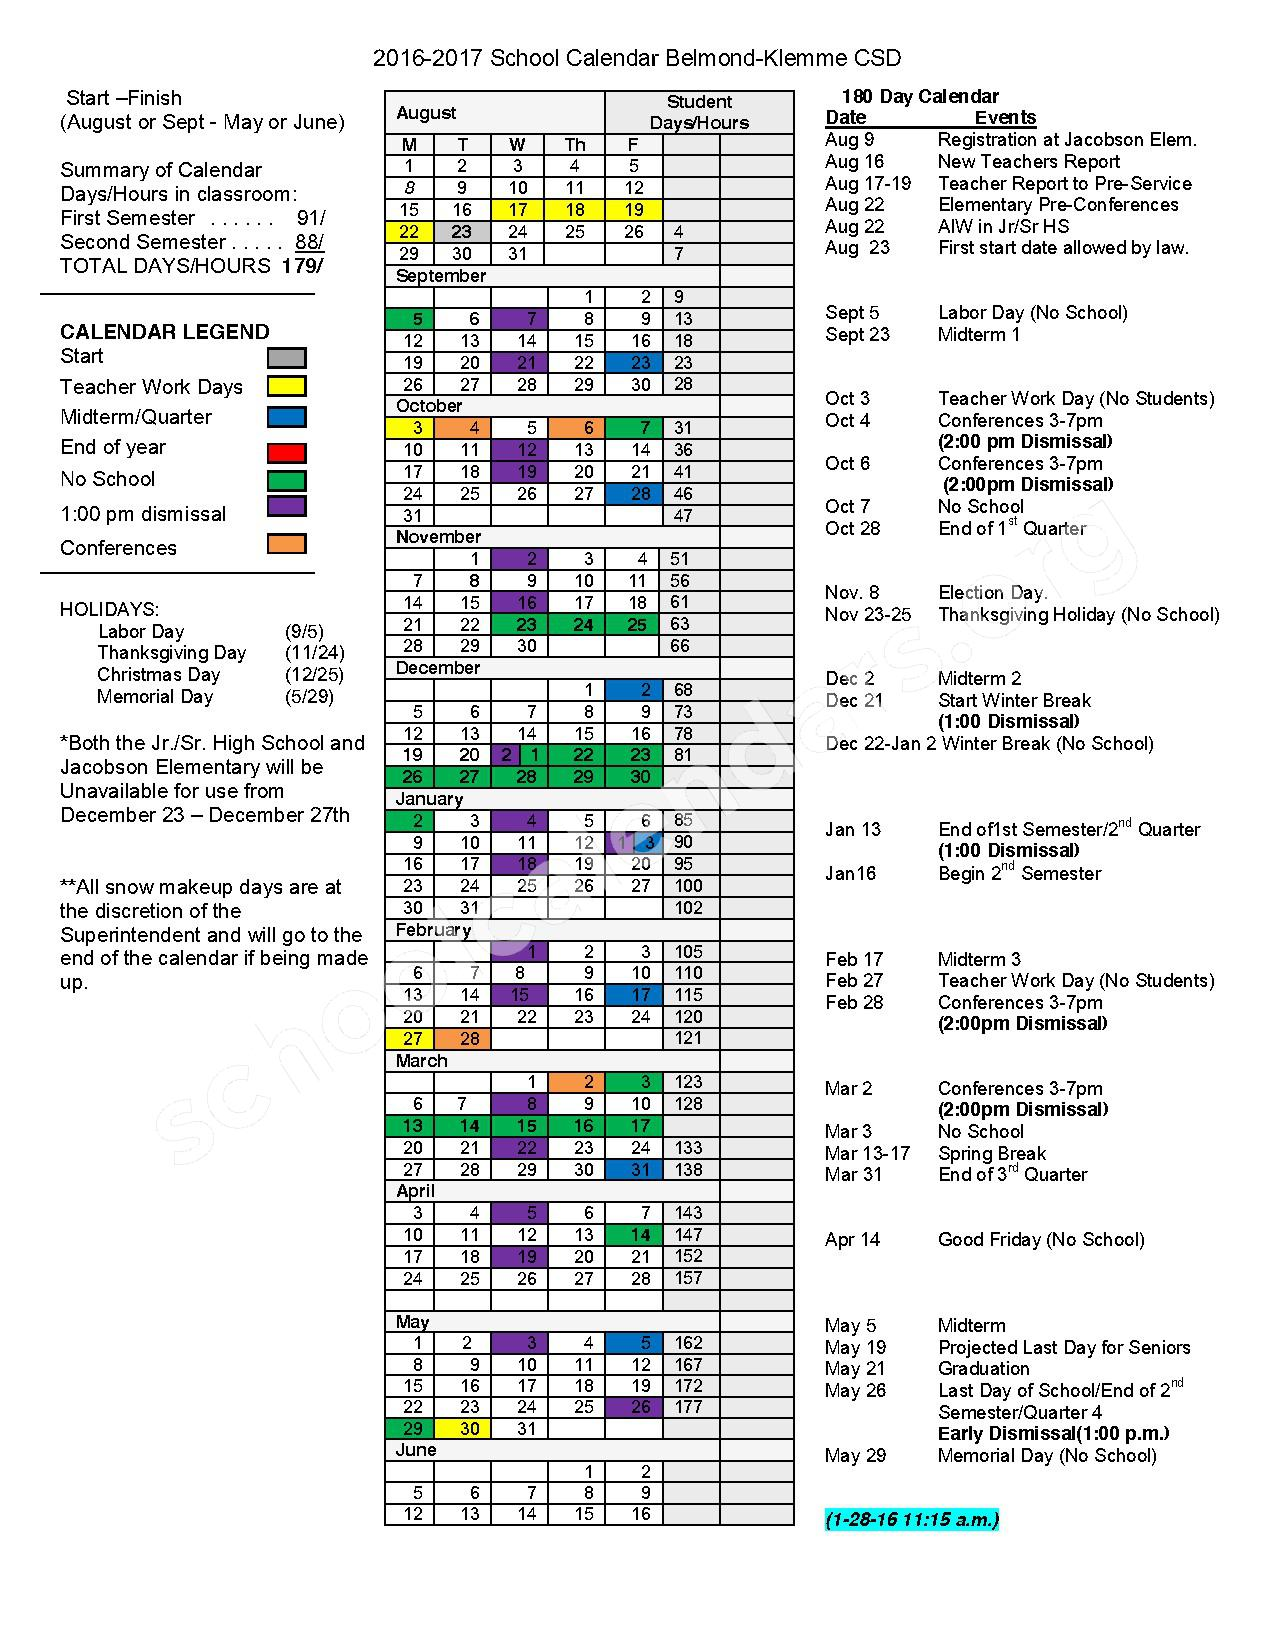 2016 - 2017 School Calendar – Belmond-Klemme Community School District – page 1